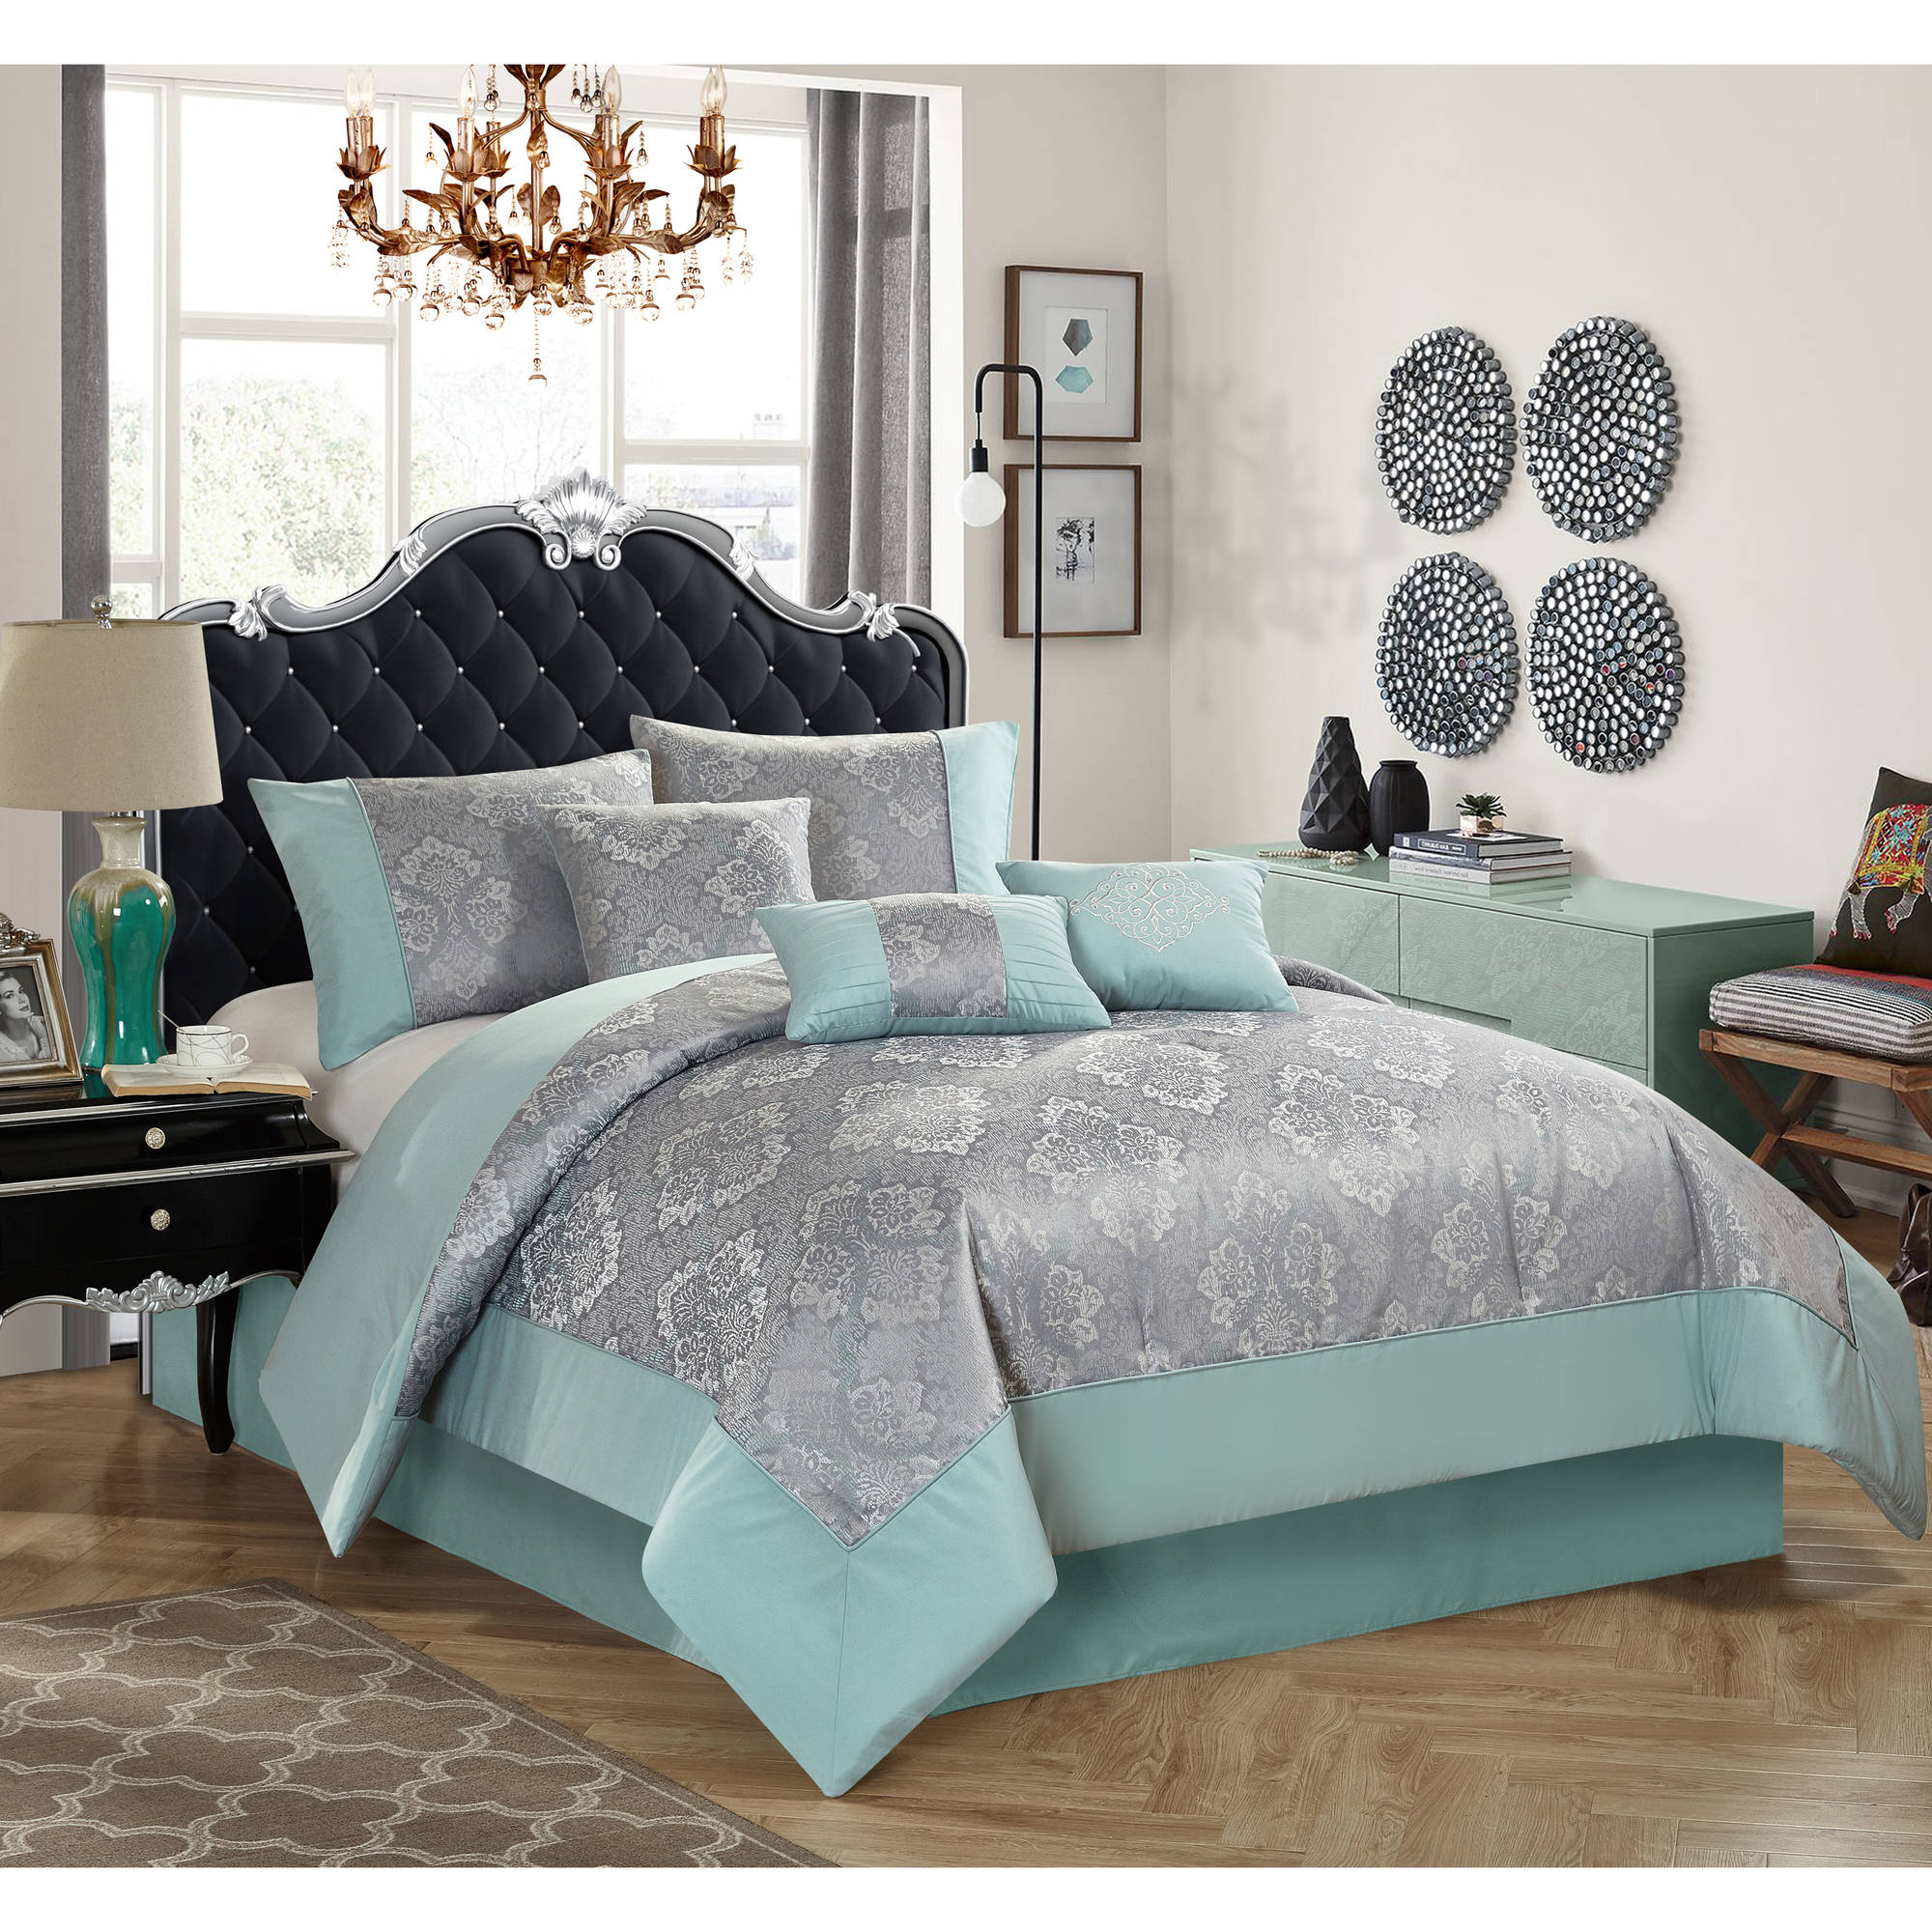 king coral cheap queen soothing bedding along together sets with full mint cream comforter set black sightly swish bed green quilt gh twin size awesome